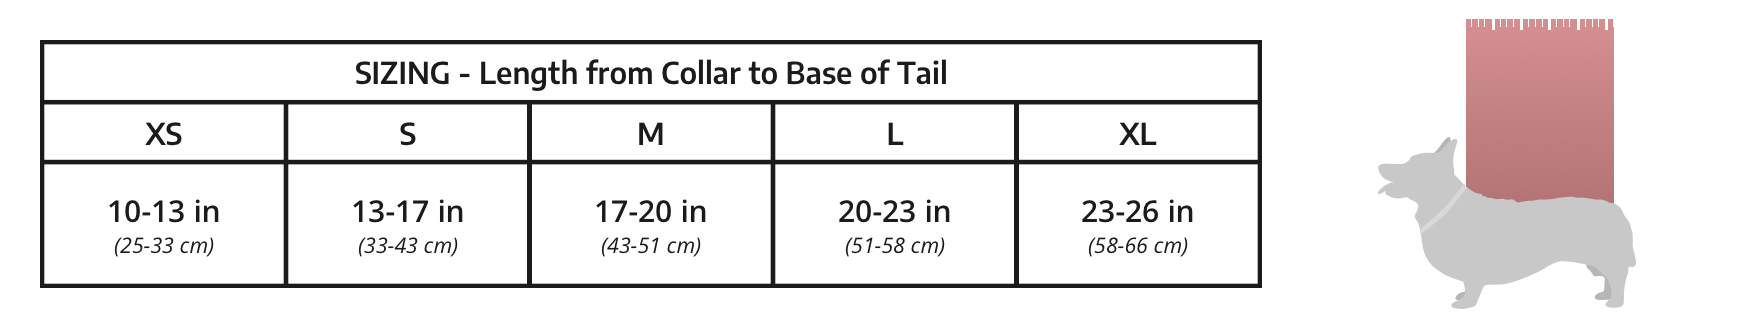 Sizing chart, measuring the length of your dog from its collar to the base of its tail. Extra Small, 10-13 inches. Small 13-17 inches. Medium 17-20 inches. Large 20-23 inches. Extra Large 23-26 inches.